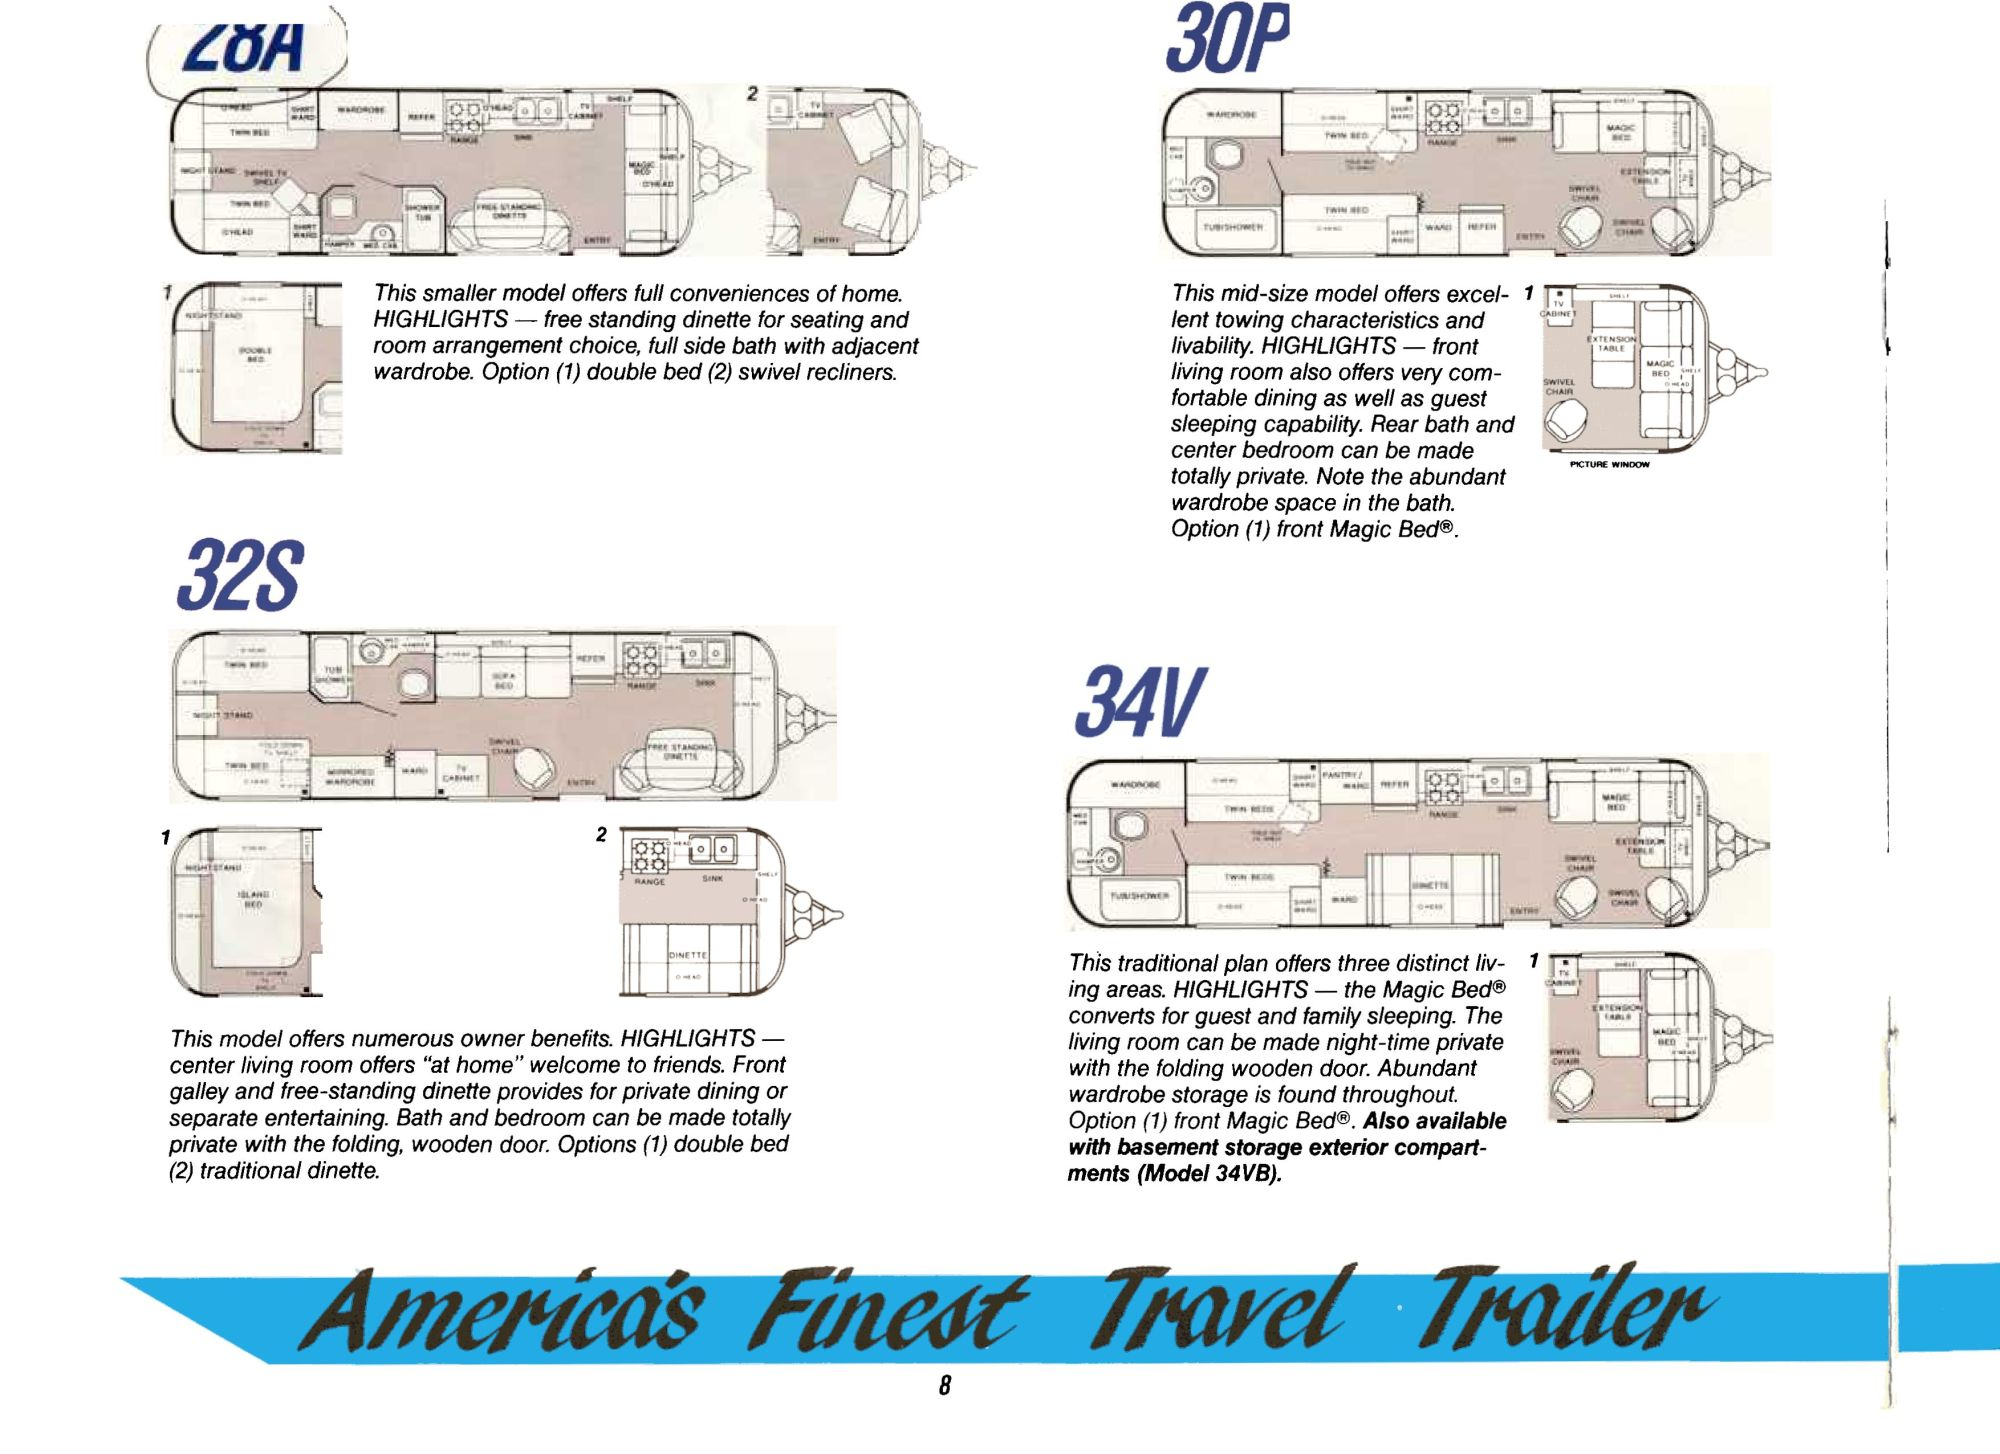 hight resolution of 1984 airstream wiring diagram wiring diagramavion travelcade club travel former member fifth wheel fleetwood1984 airstream wiring